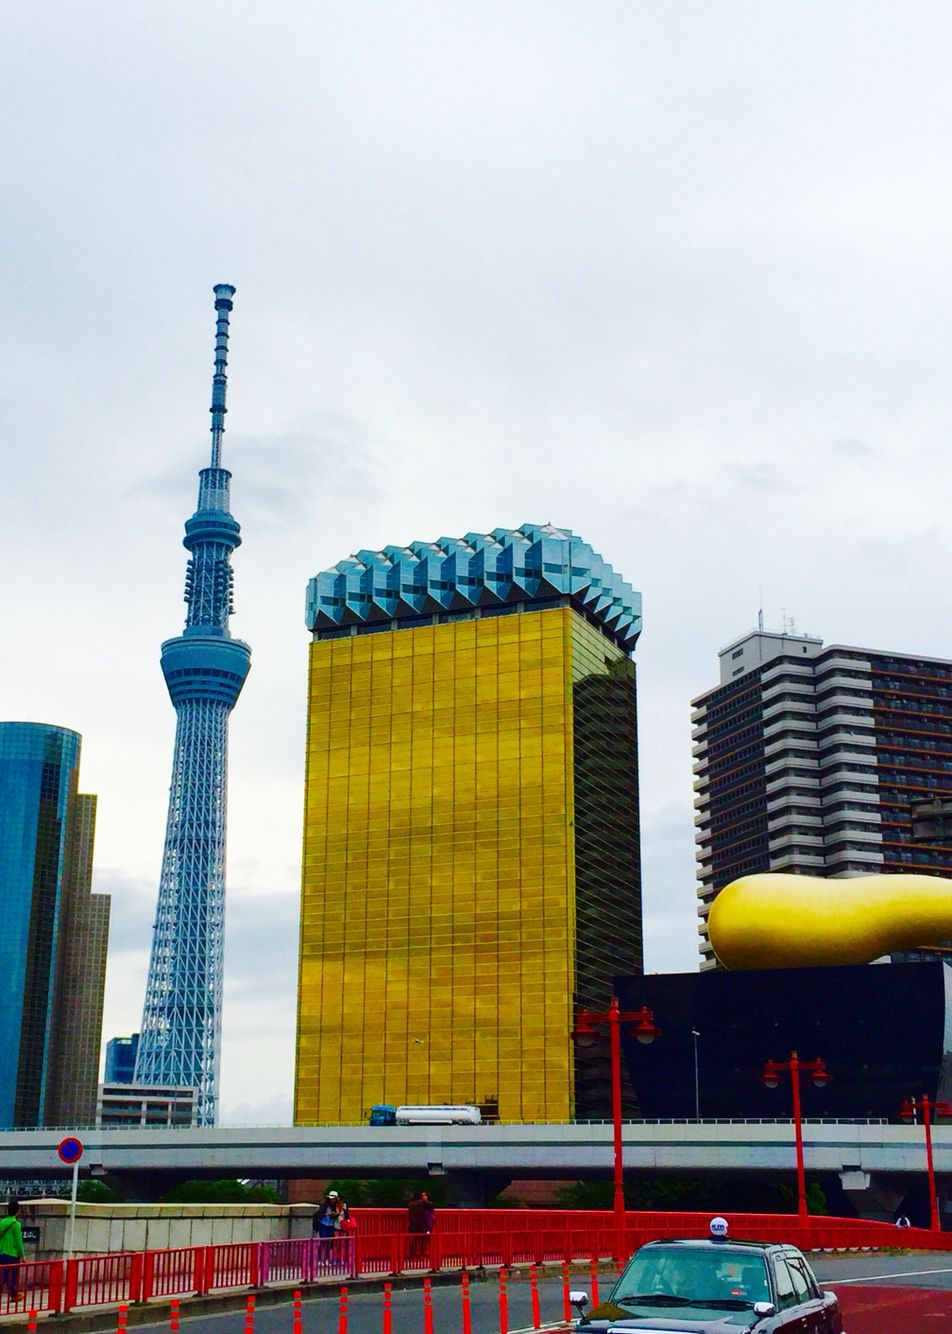 SkyTree. And the building that looks like beer is The headquarters of Asahi Beer.